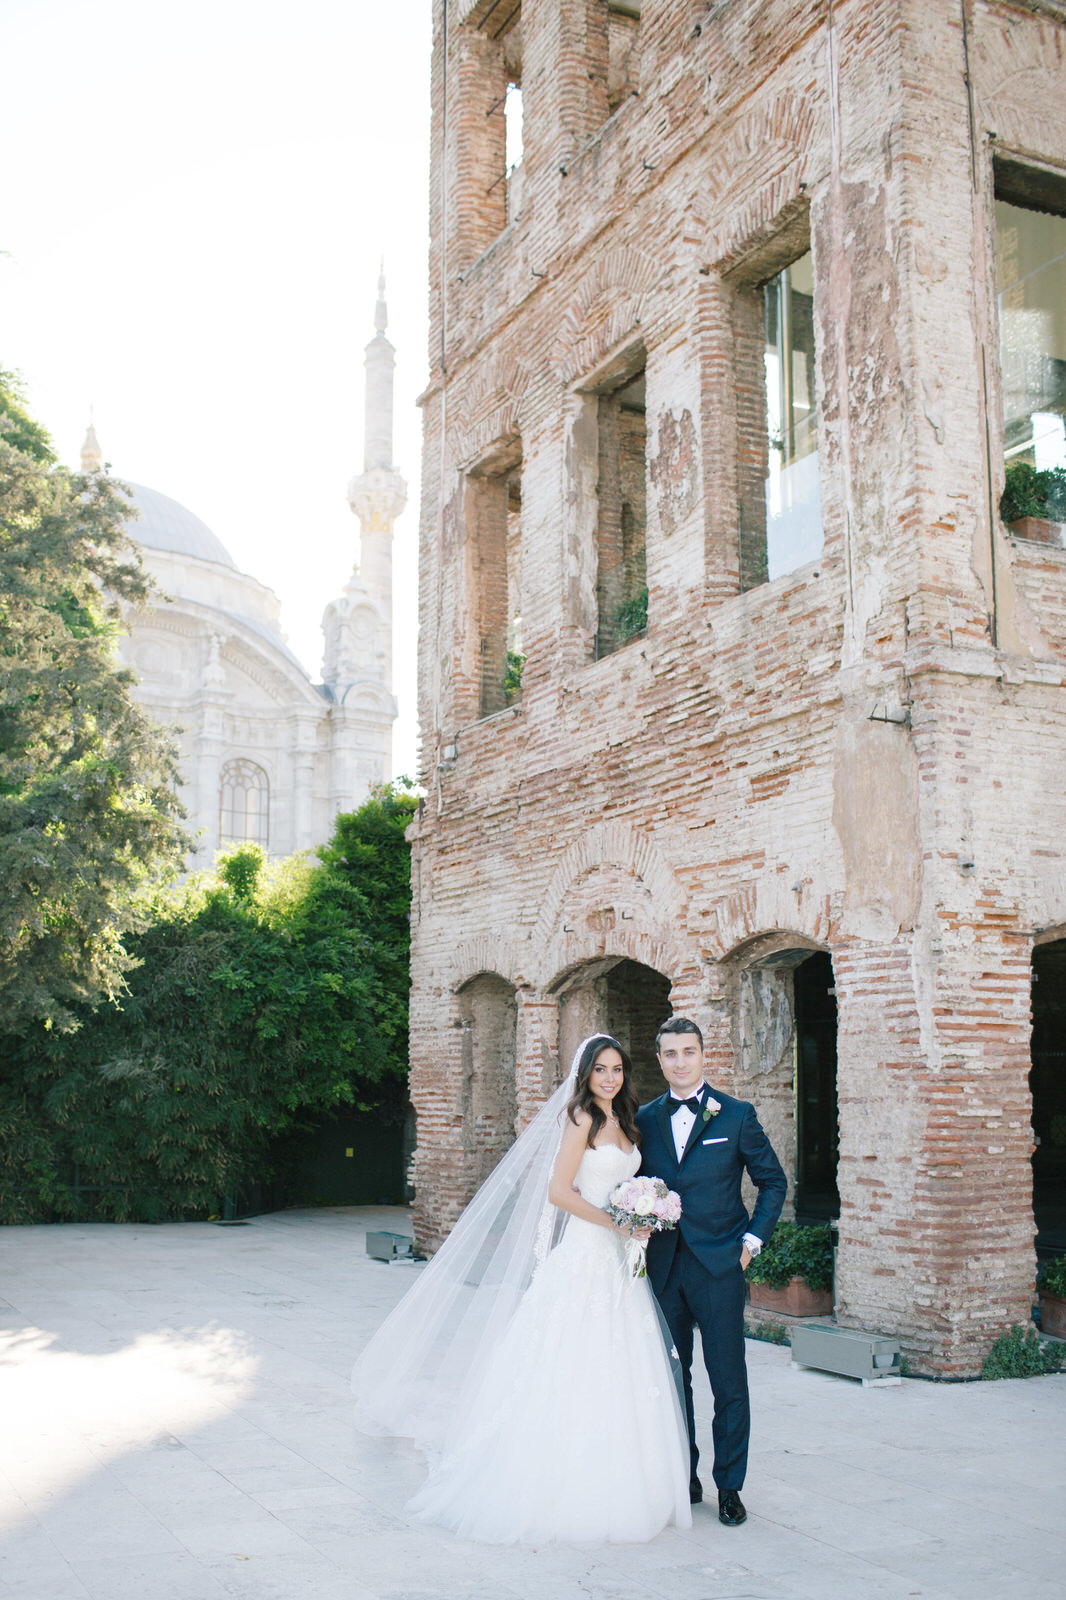 Ece + Hakan Esma Sultan Wedding Fidan Kandemir Photography